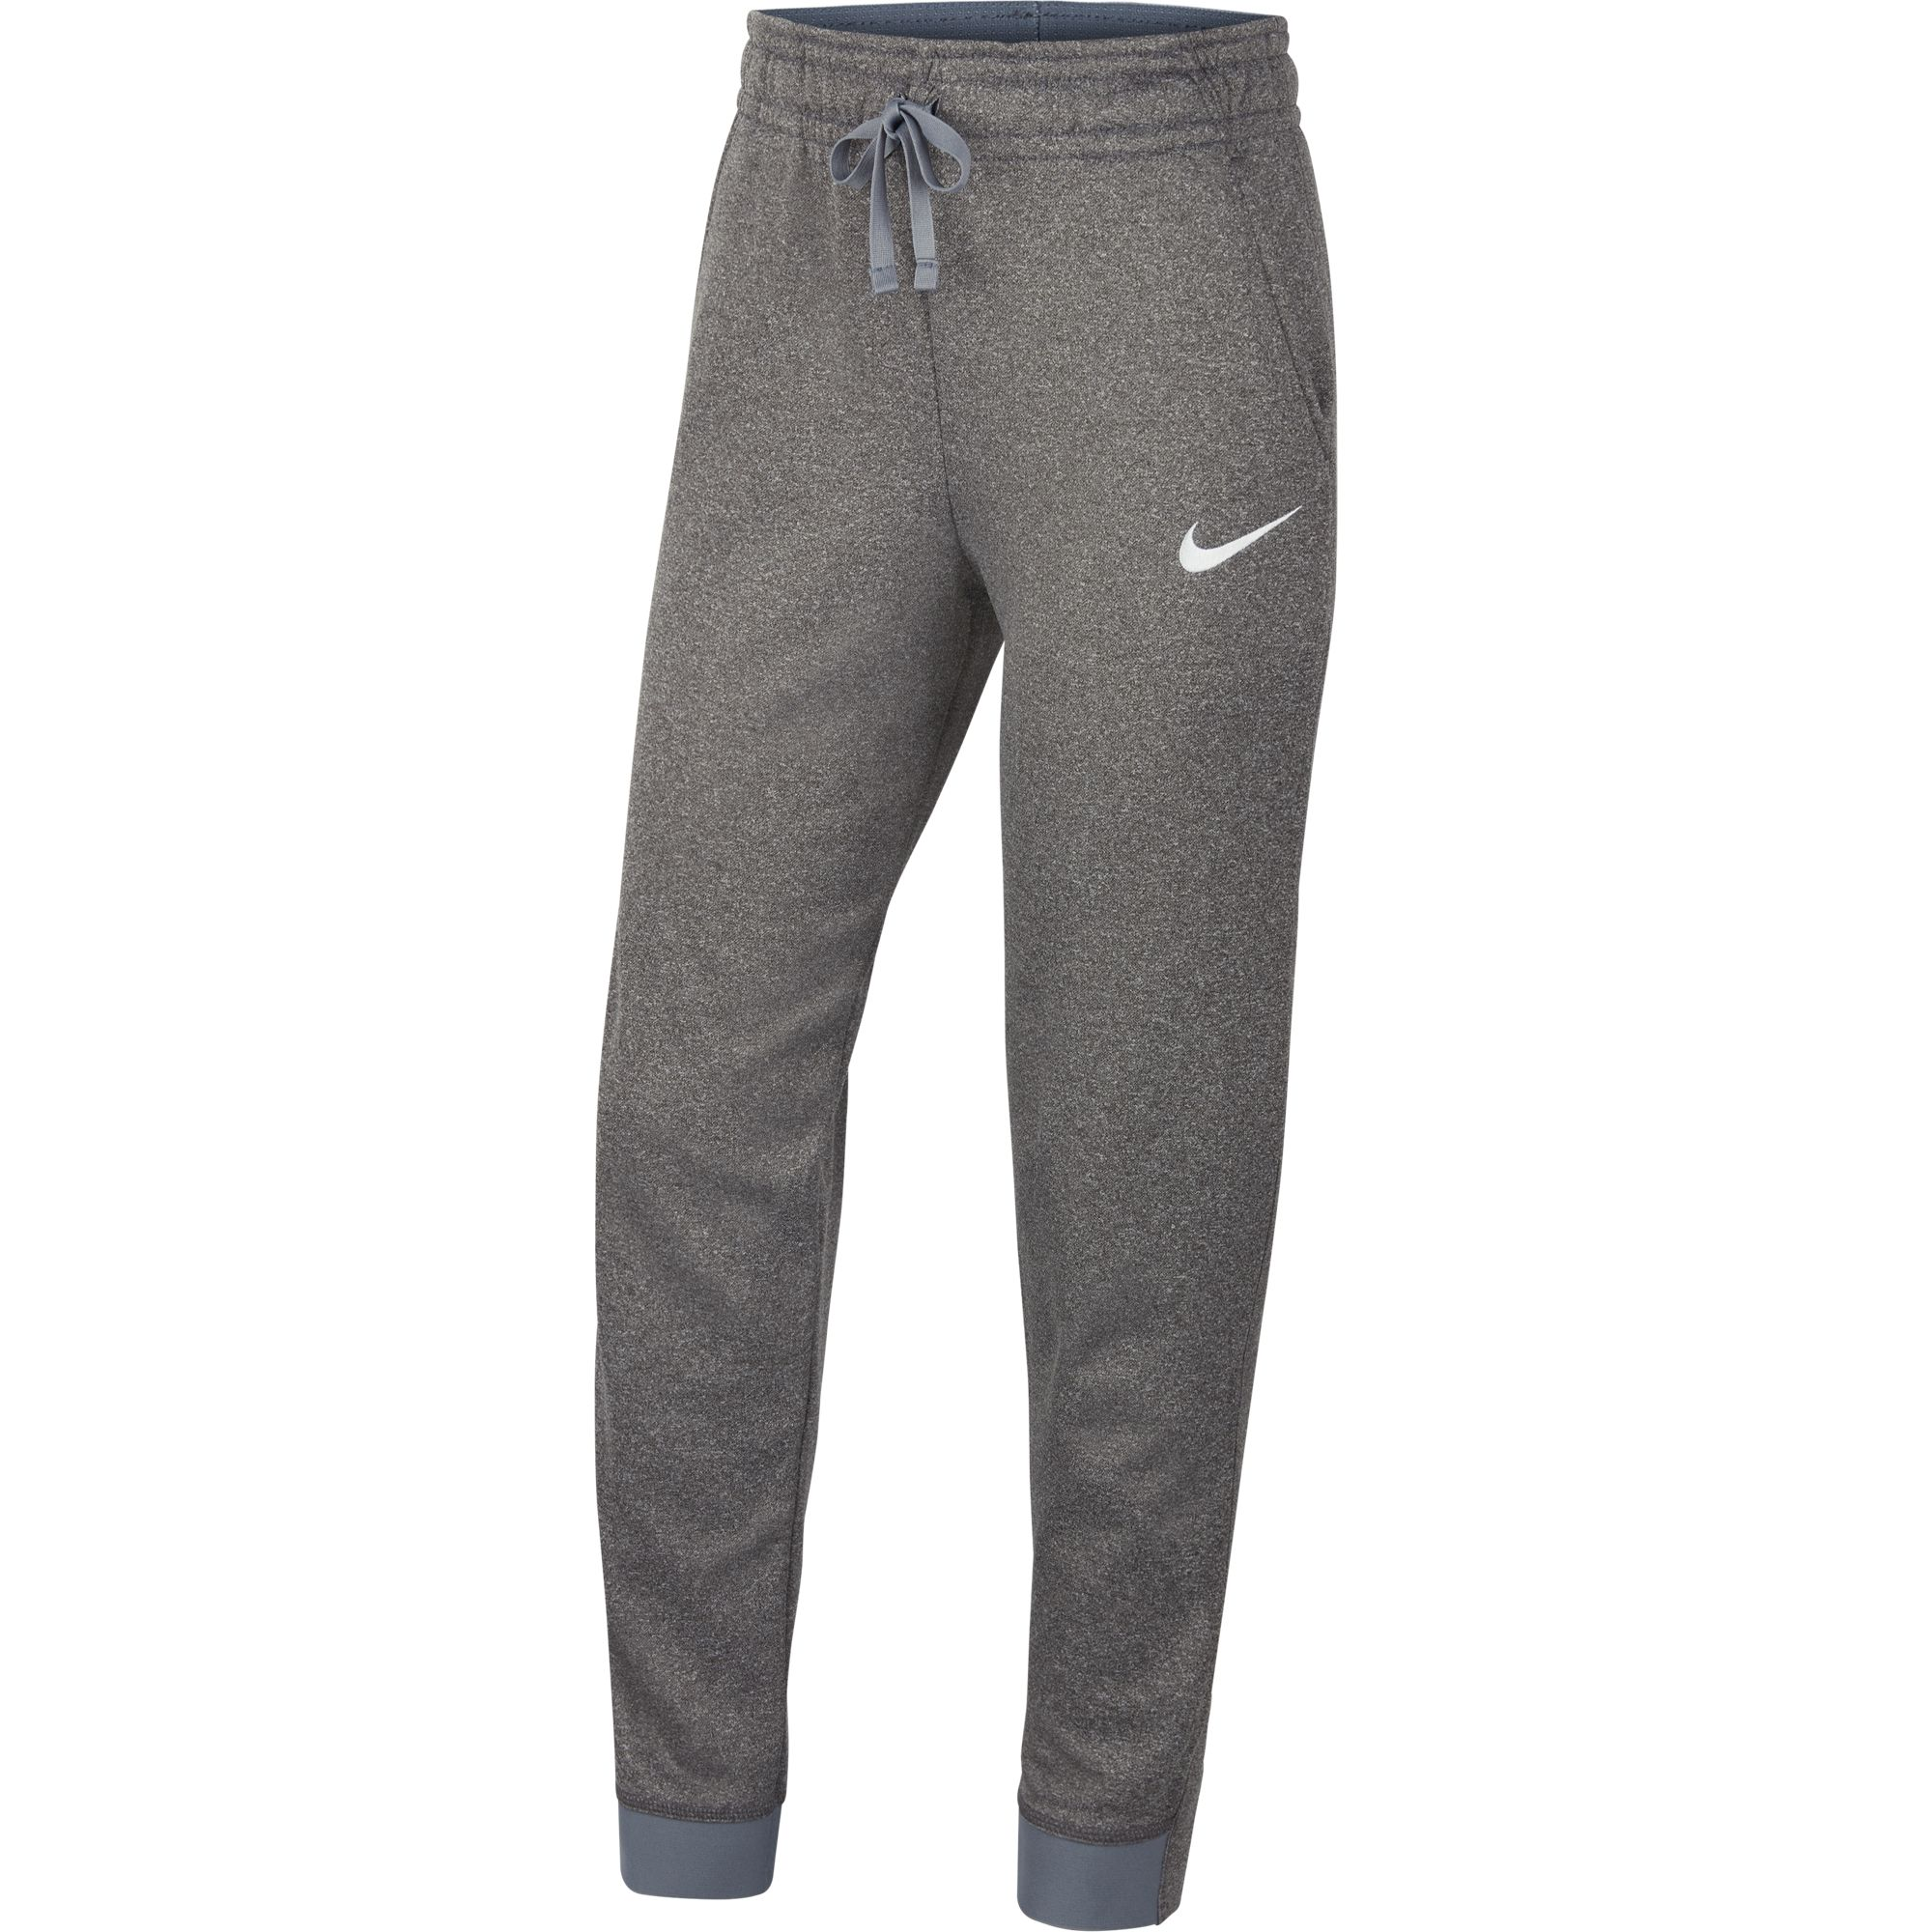 Girl's Therma Cuff Pant, Heather Gray, swatch